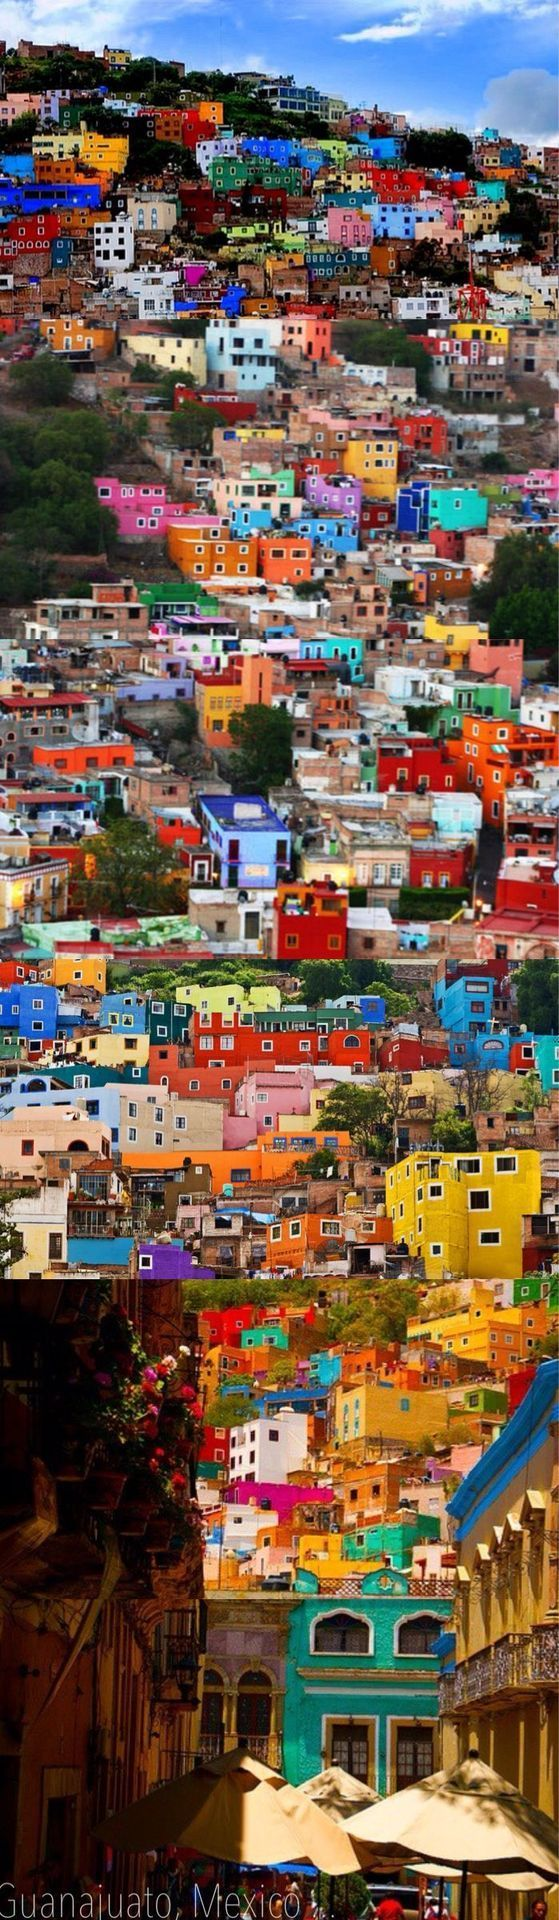 Beautiful, colorful city in Mexico.